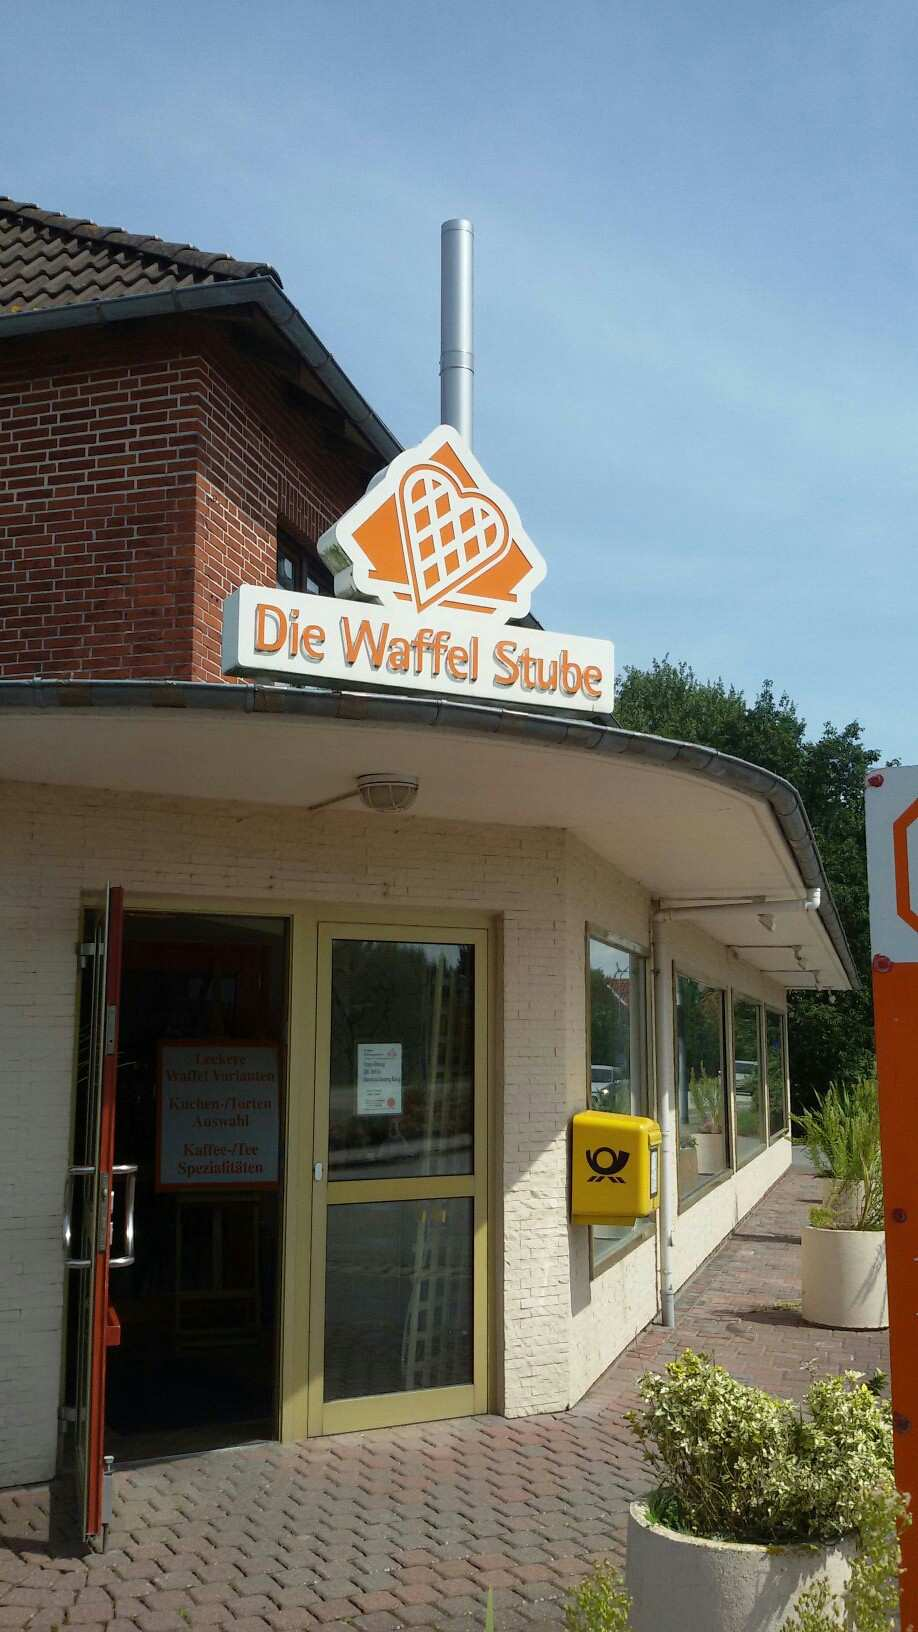 Waffelstube in Tating